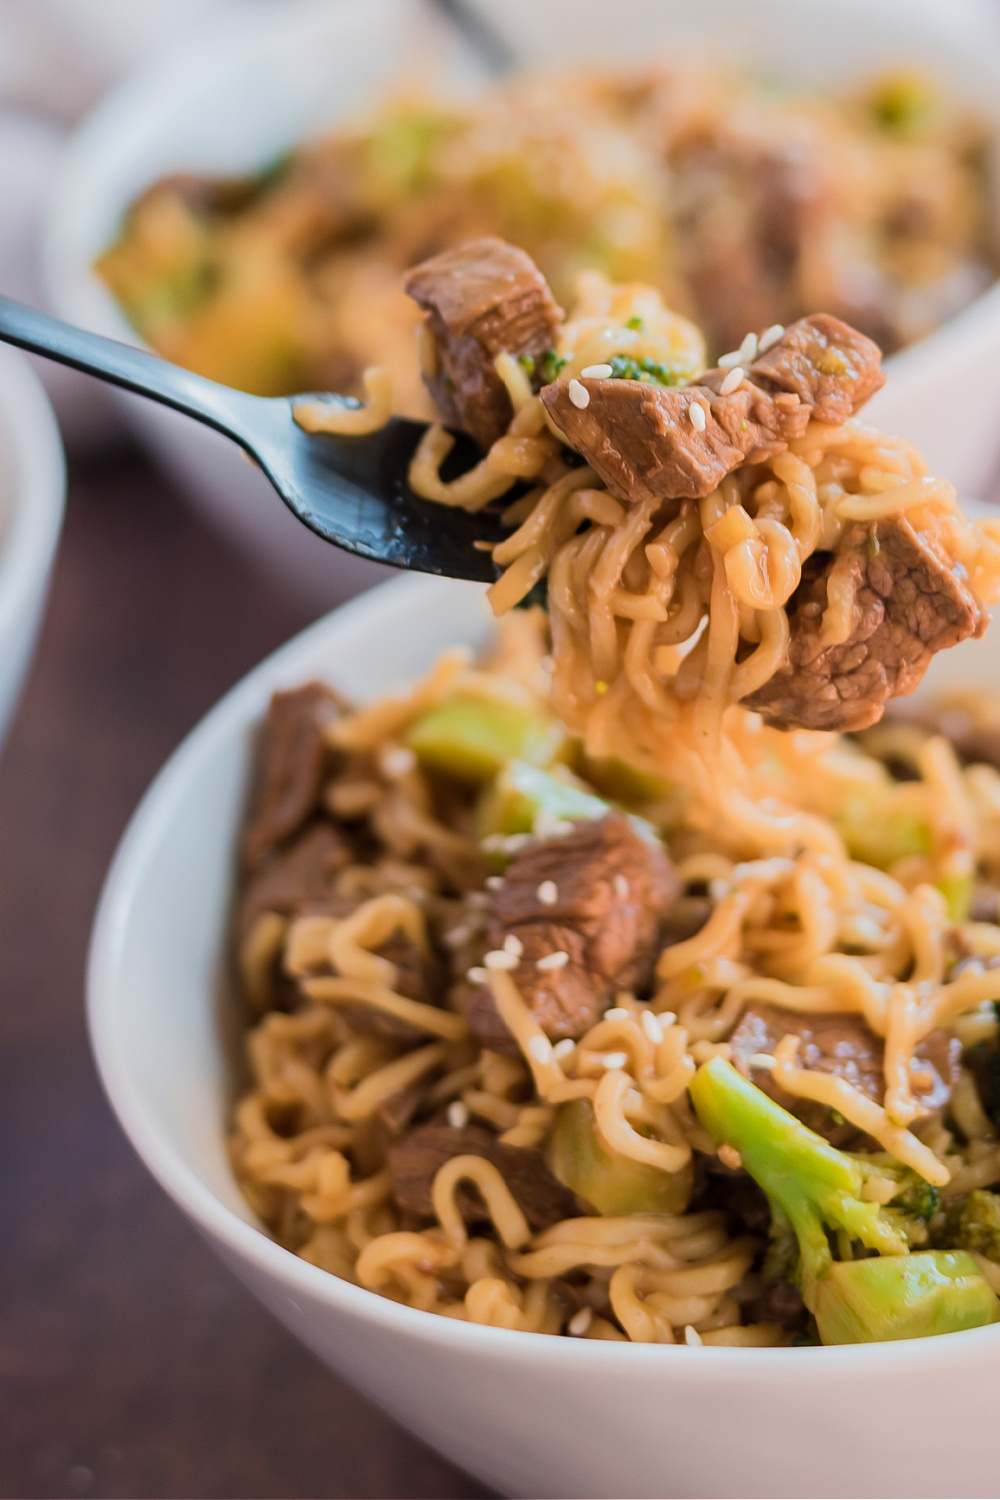 Take-Out Beef and Broccoli Ramen Noodles in two bowls with a fork picking up some